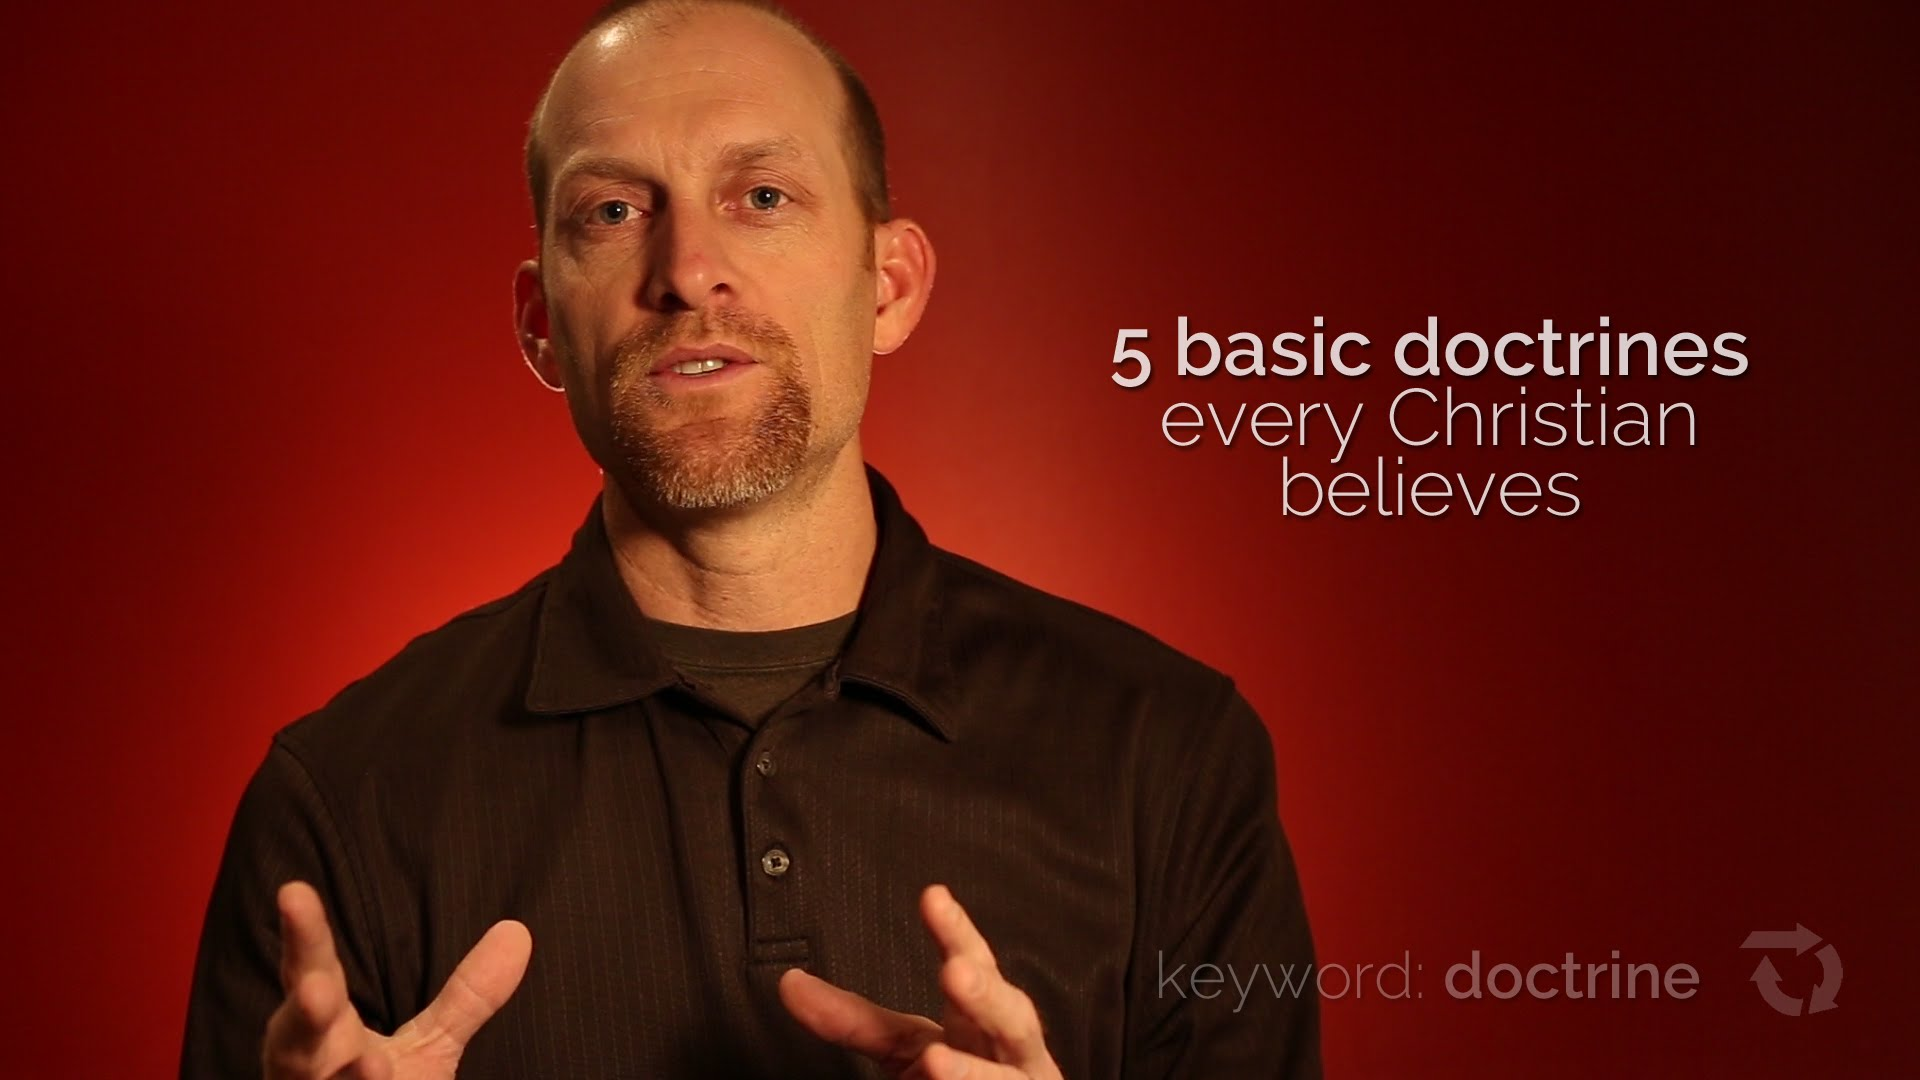 Christian Basics: 5 Doctrines Every Christian Believes